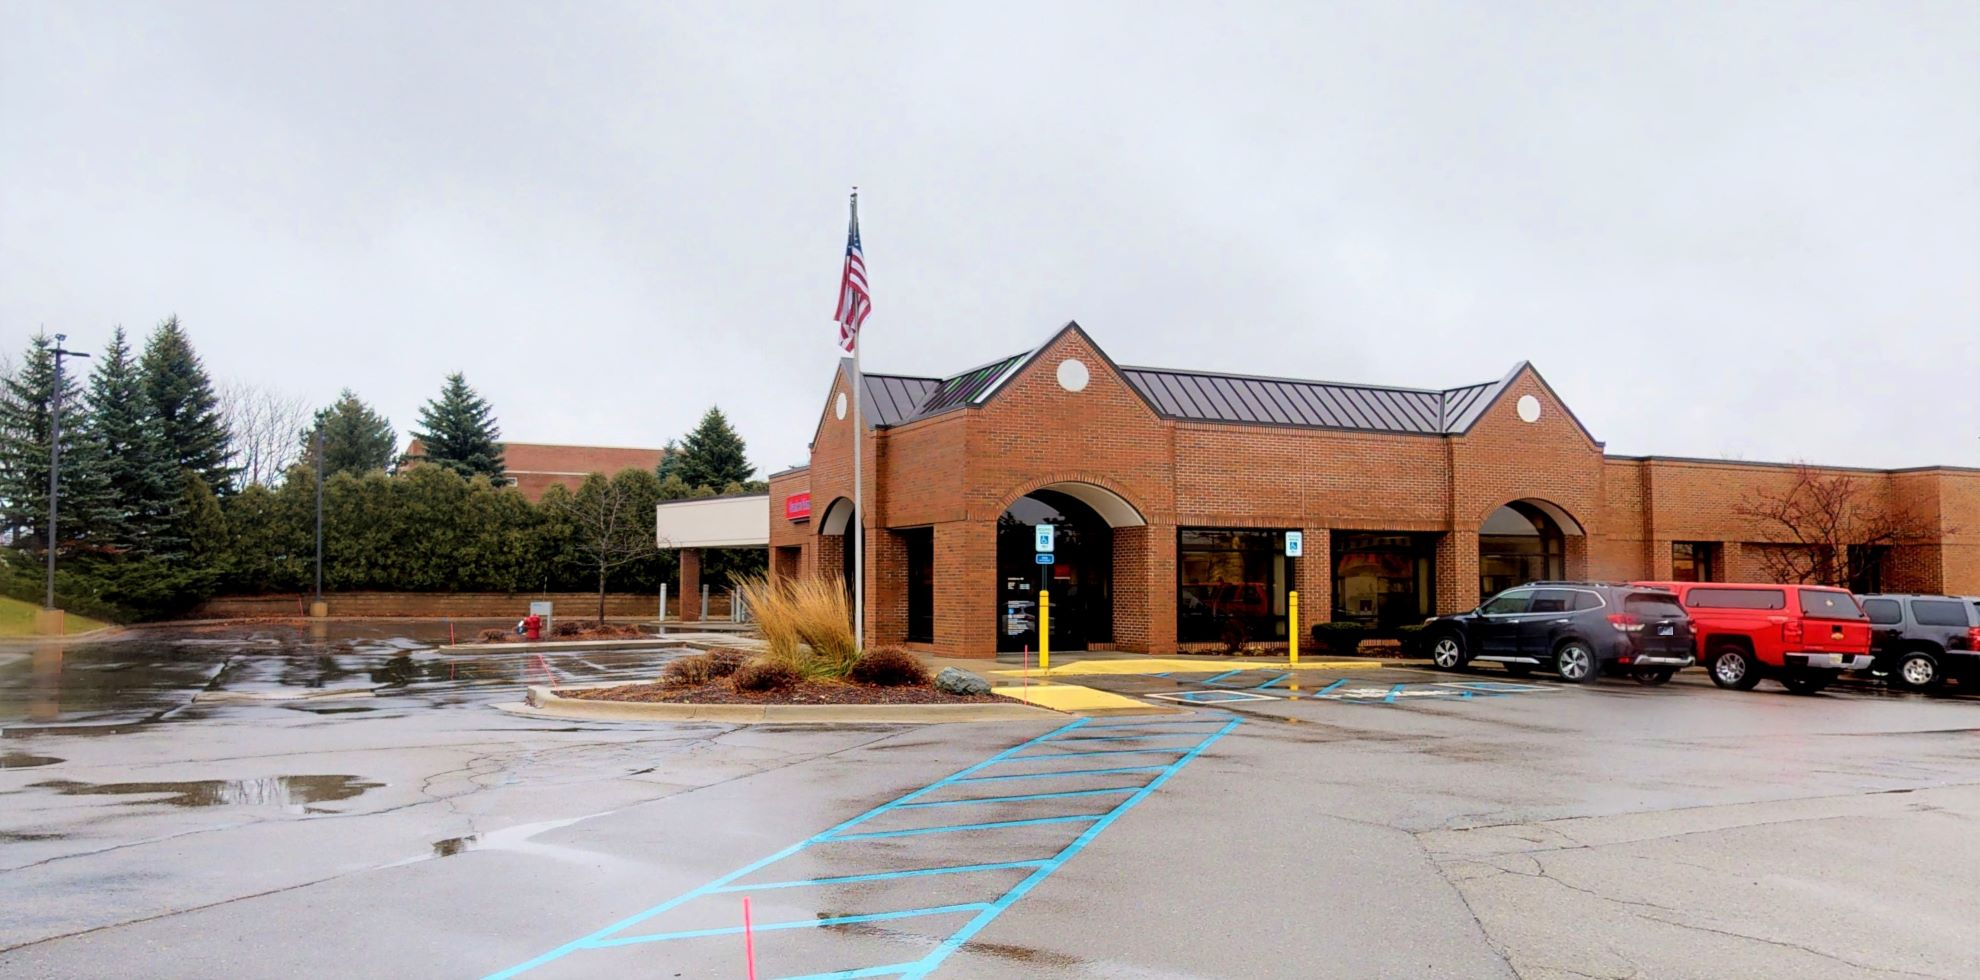 Bank of America financial center with drive-thru ATM   3400 E Grand River Ave, Howell, MI 48843